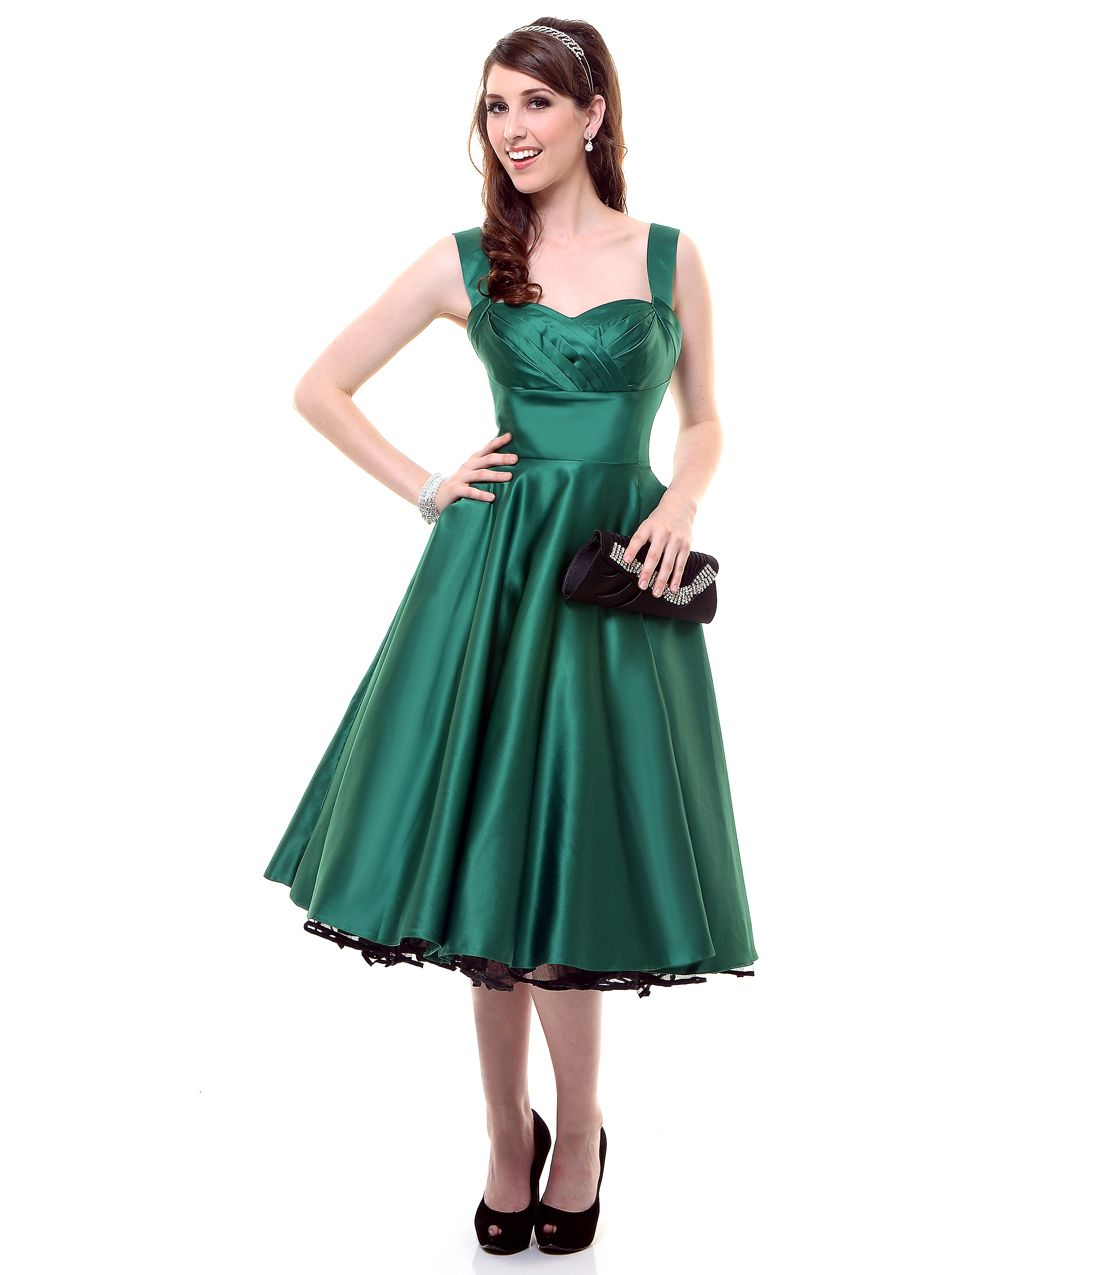 Emerald Green Satin Happily Ever After Pleated Swing Dress ...